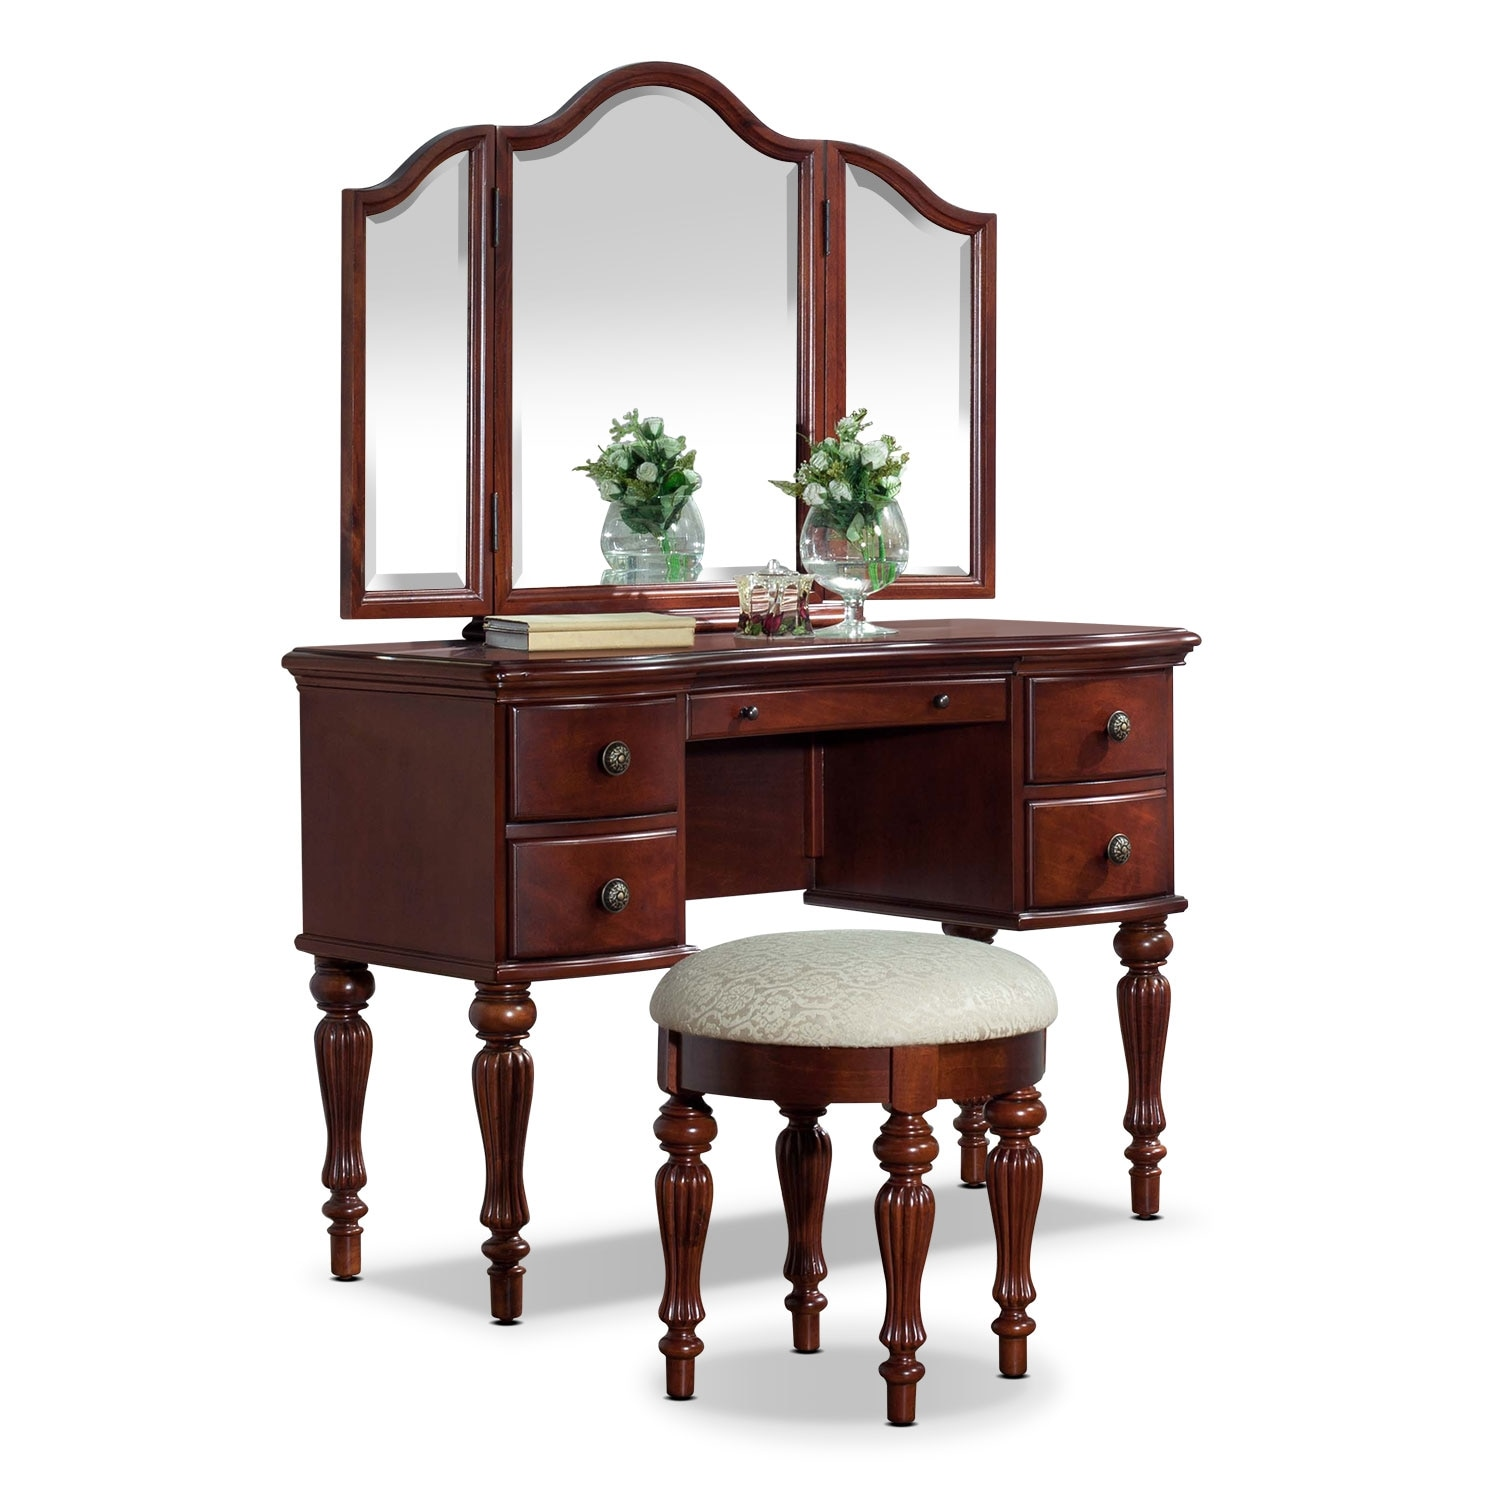 Bedroom Furniture - Sibley Vanity Set